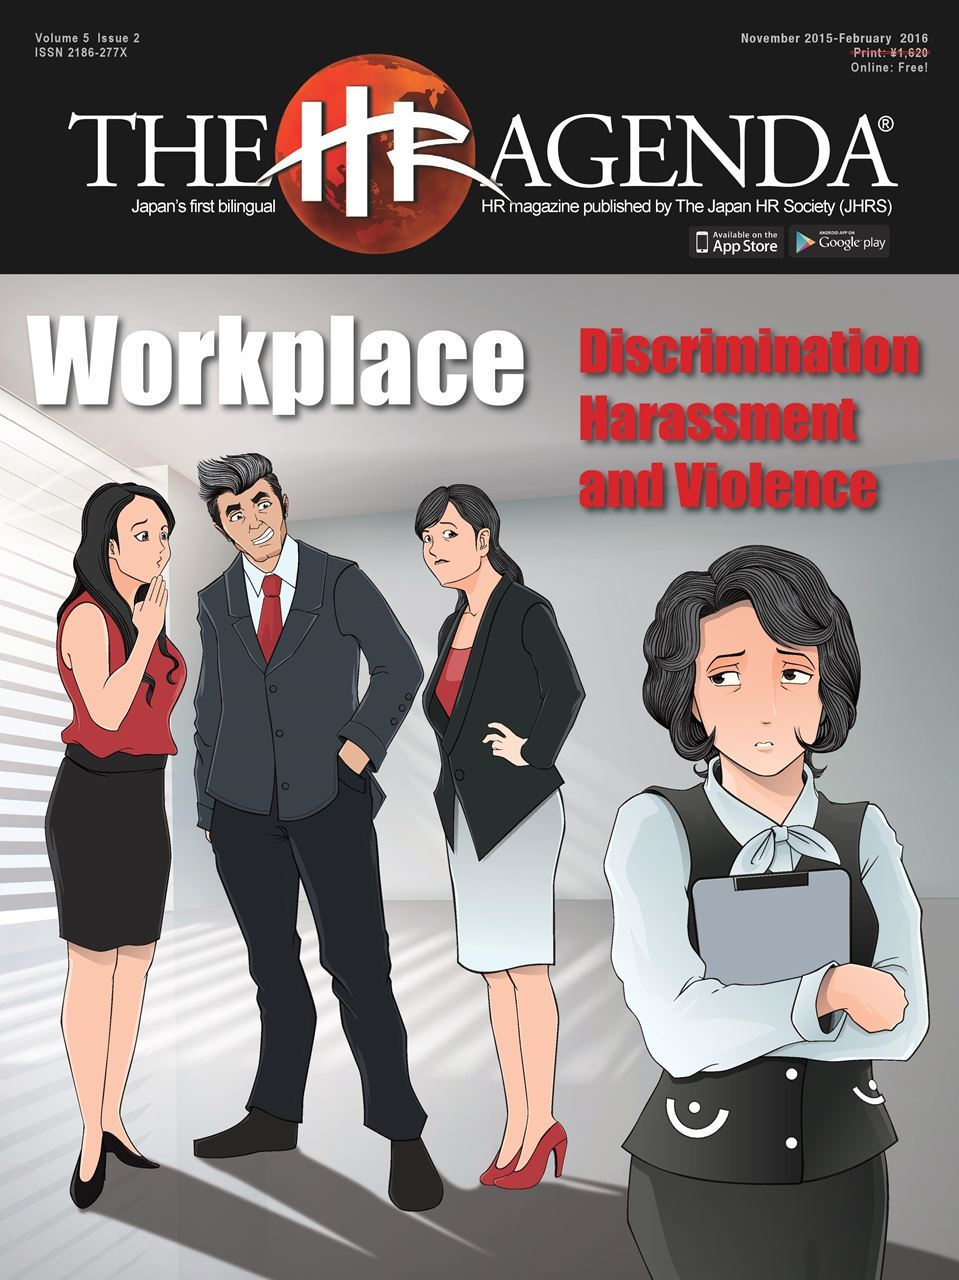 the issue of discrimination and harassment in the workplace Gender discrimination and sexual harassment are two serious issues that can be an insidious poison in a workplace apart from legal consequences (which can be serious.